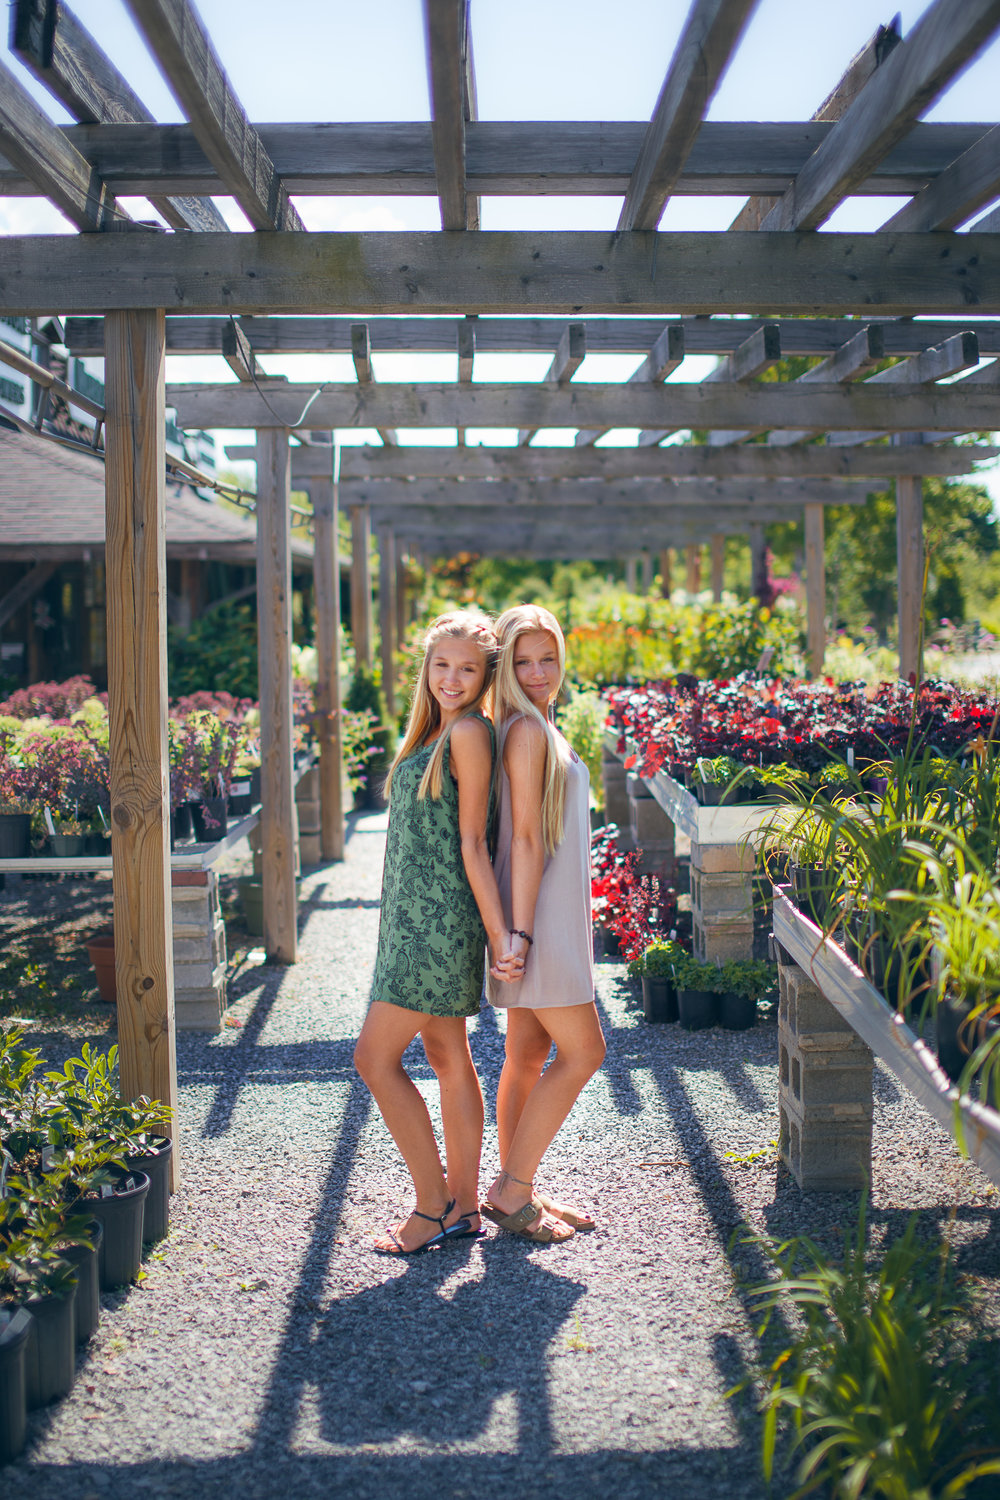 Greenhouse Summer Outdoor Seniors